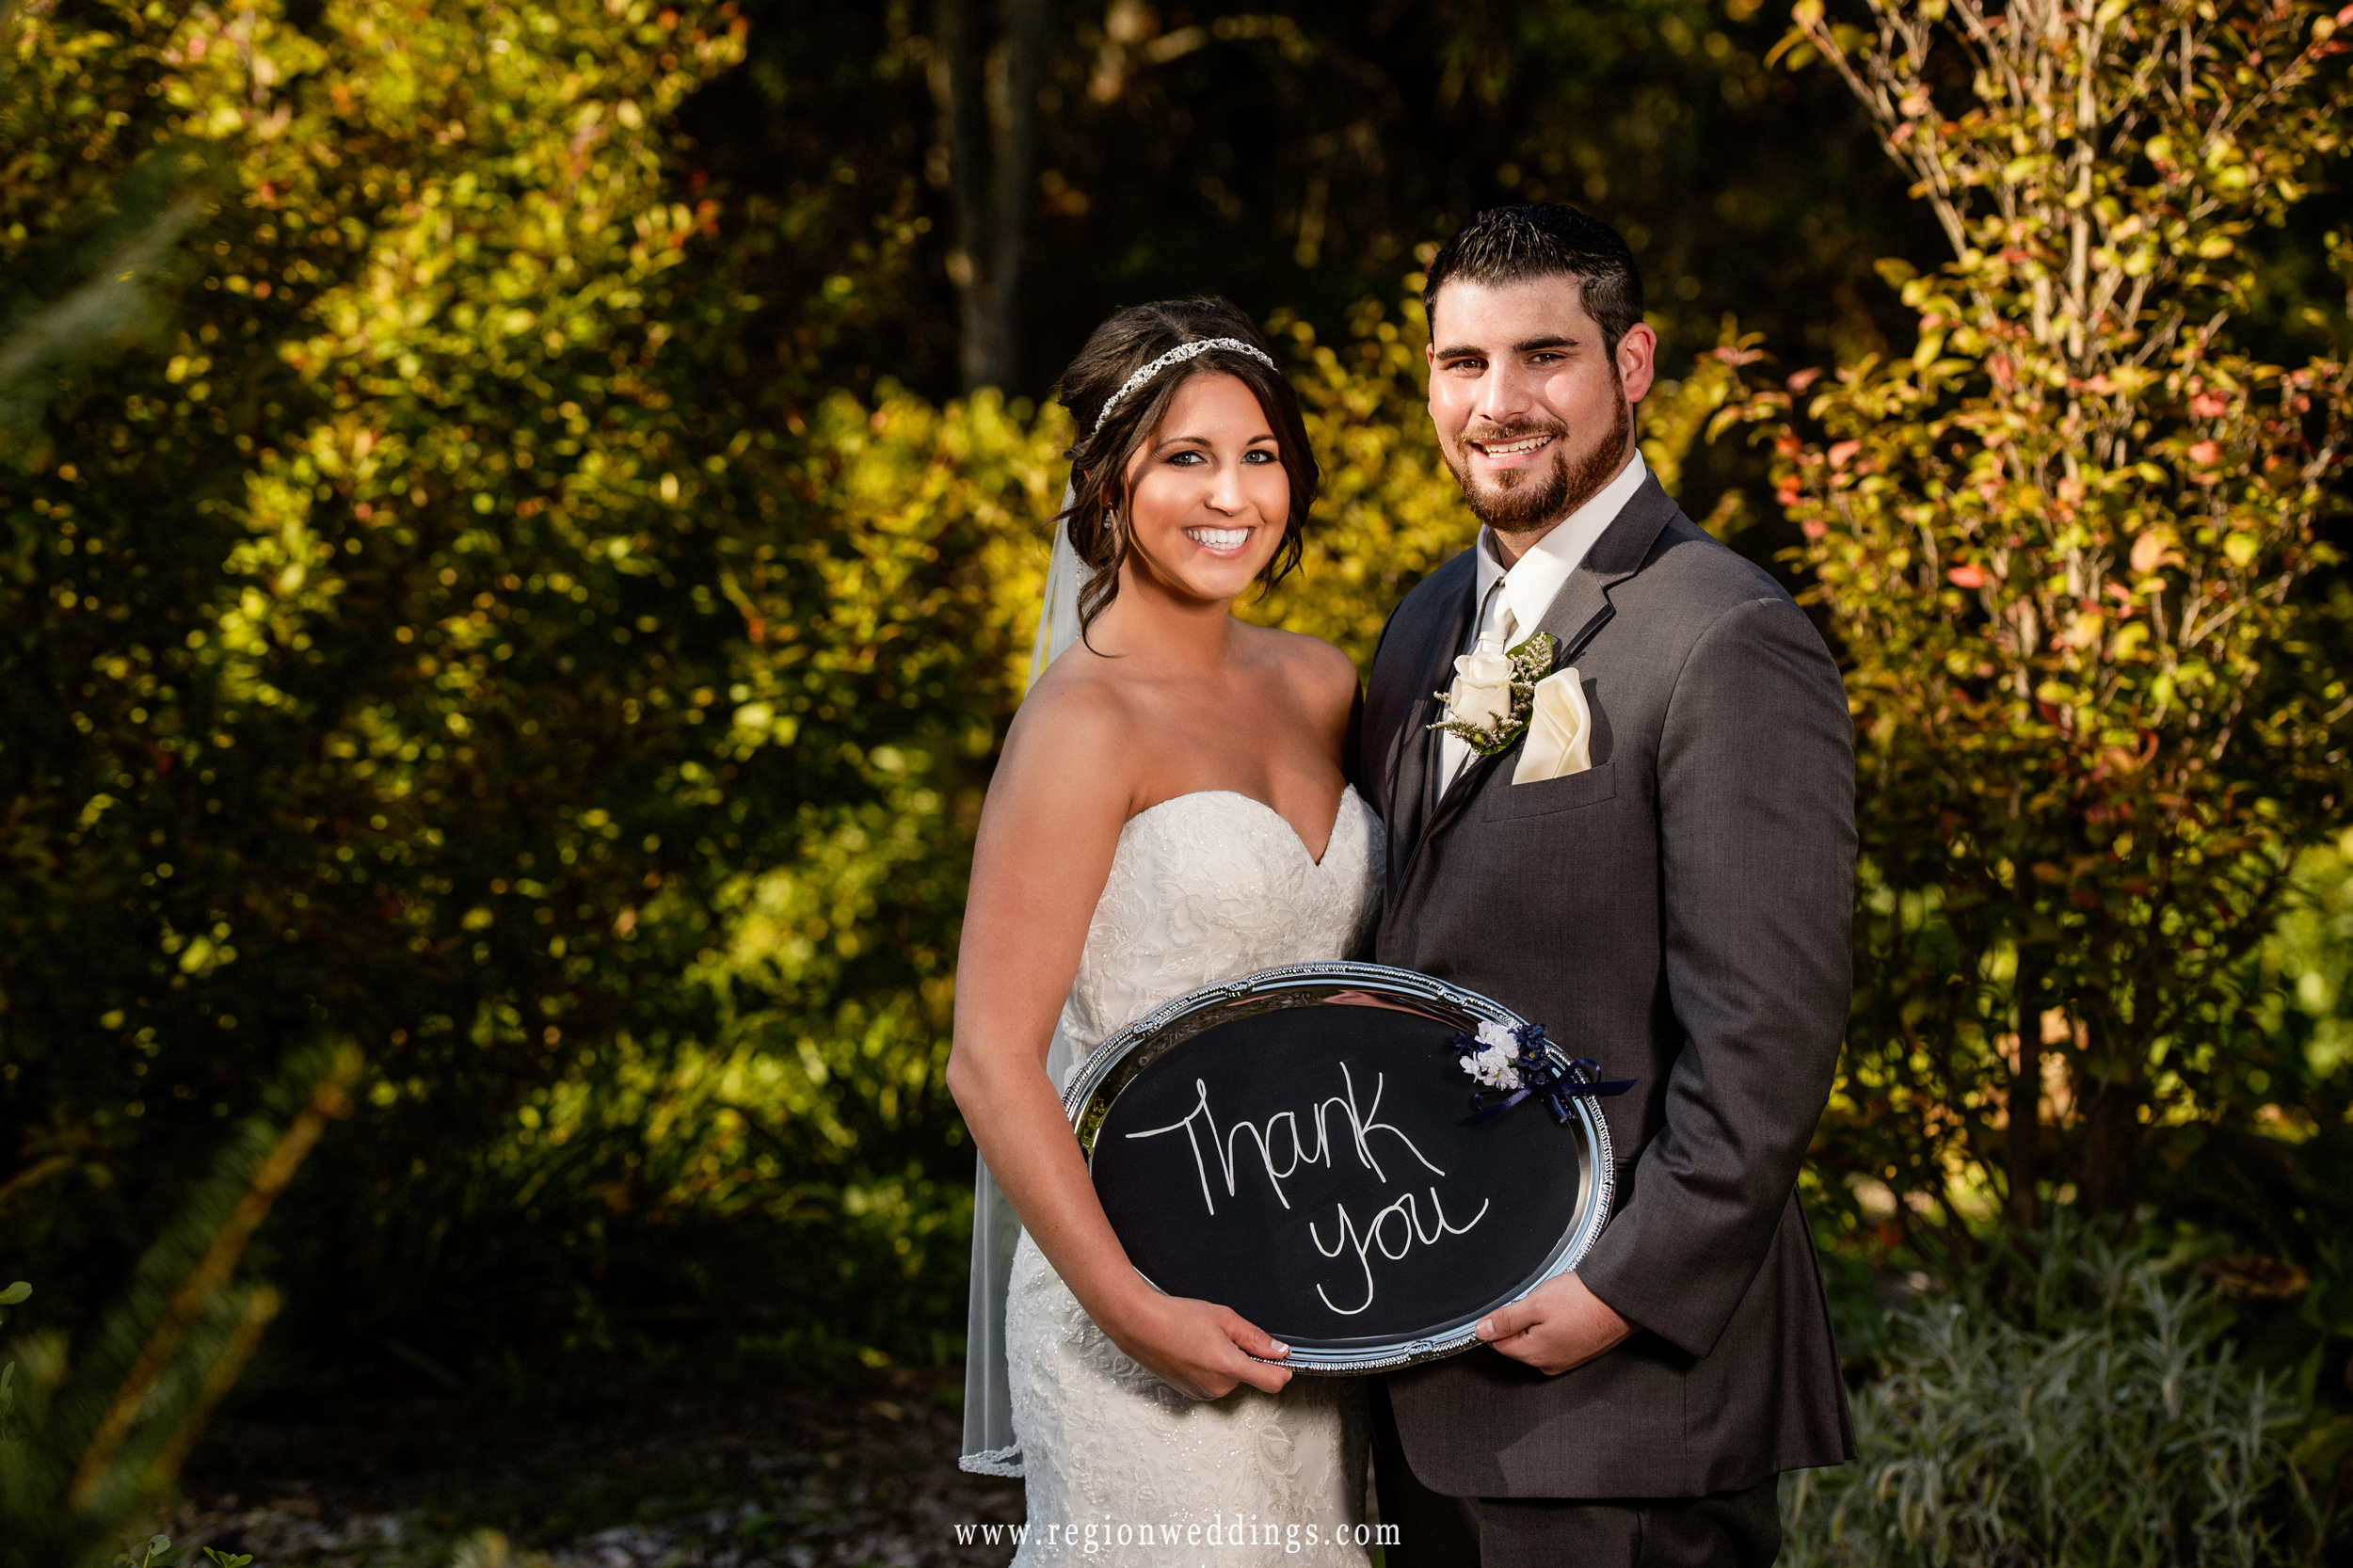 Bride and groom display their Thank You sign on wedding day.